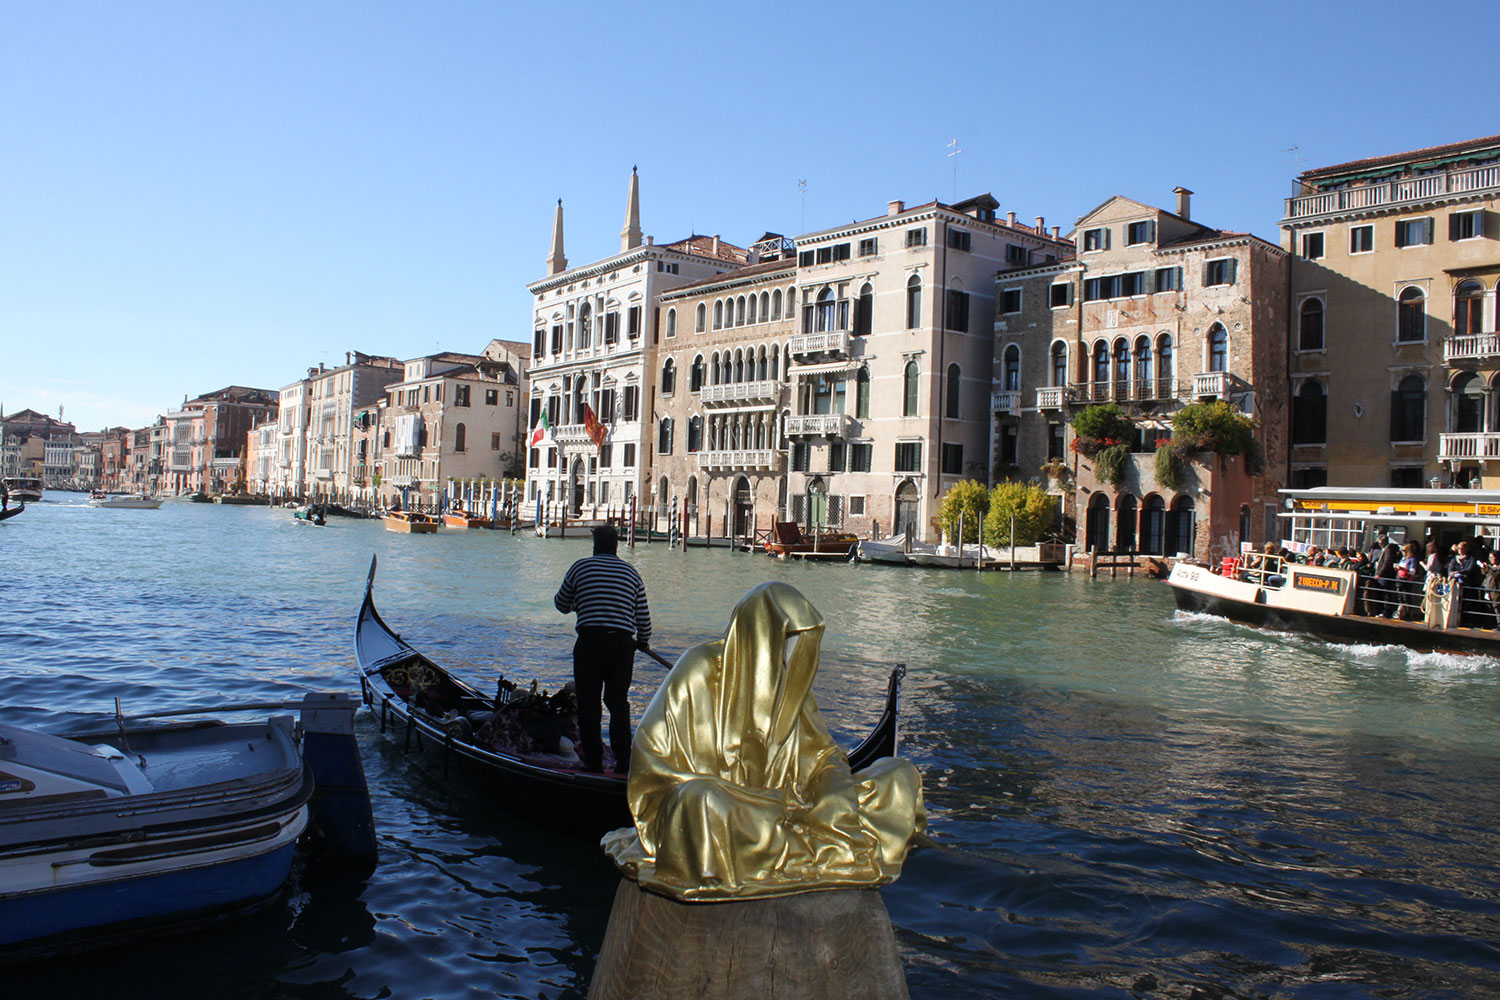 european-cultural-centre-venice-biennale-contemporary-art-show-sculpture-fine-arts-public-statue-guardians-of-time-manfred-kili-kielnhofer-9854